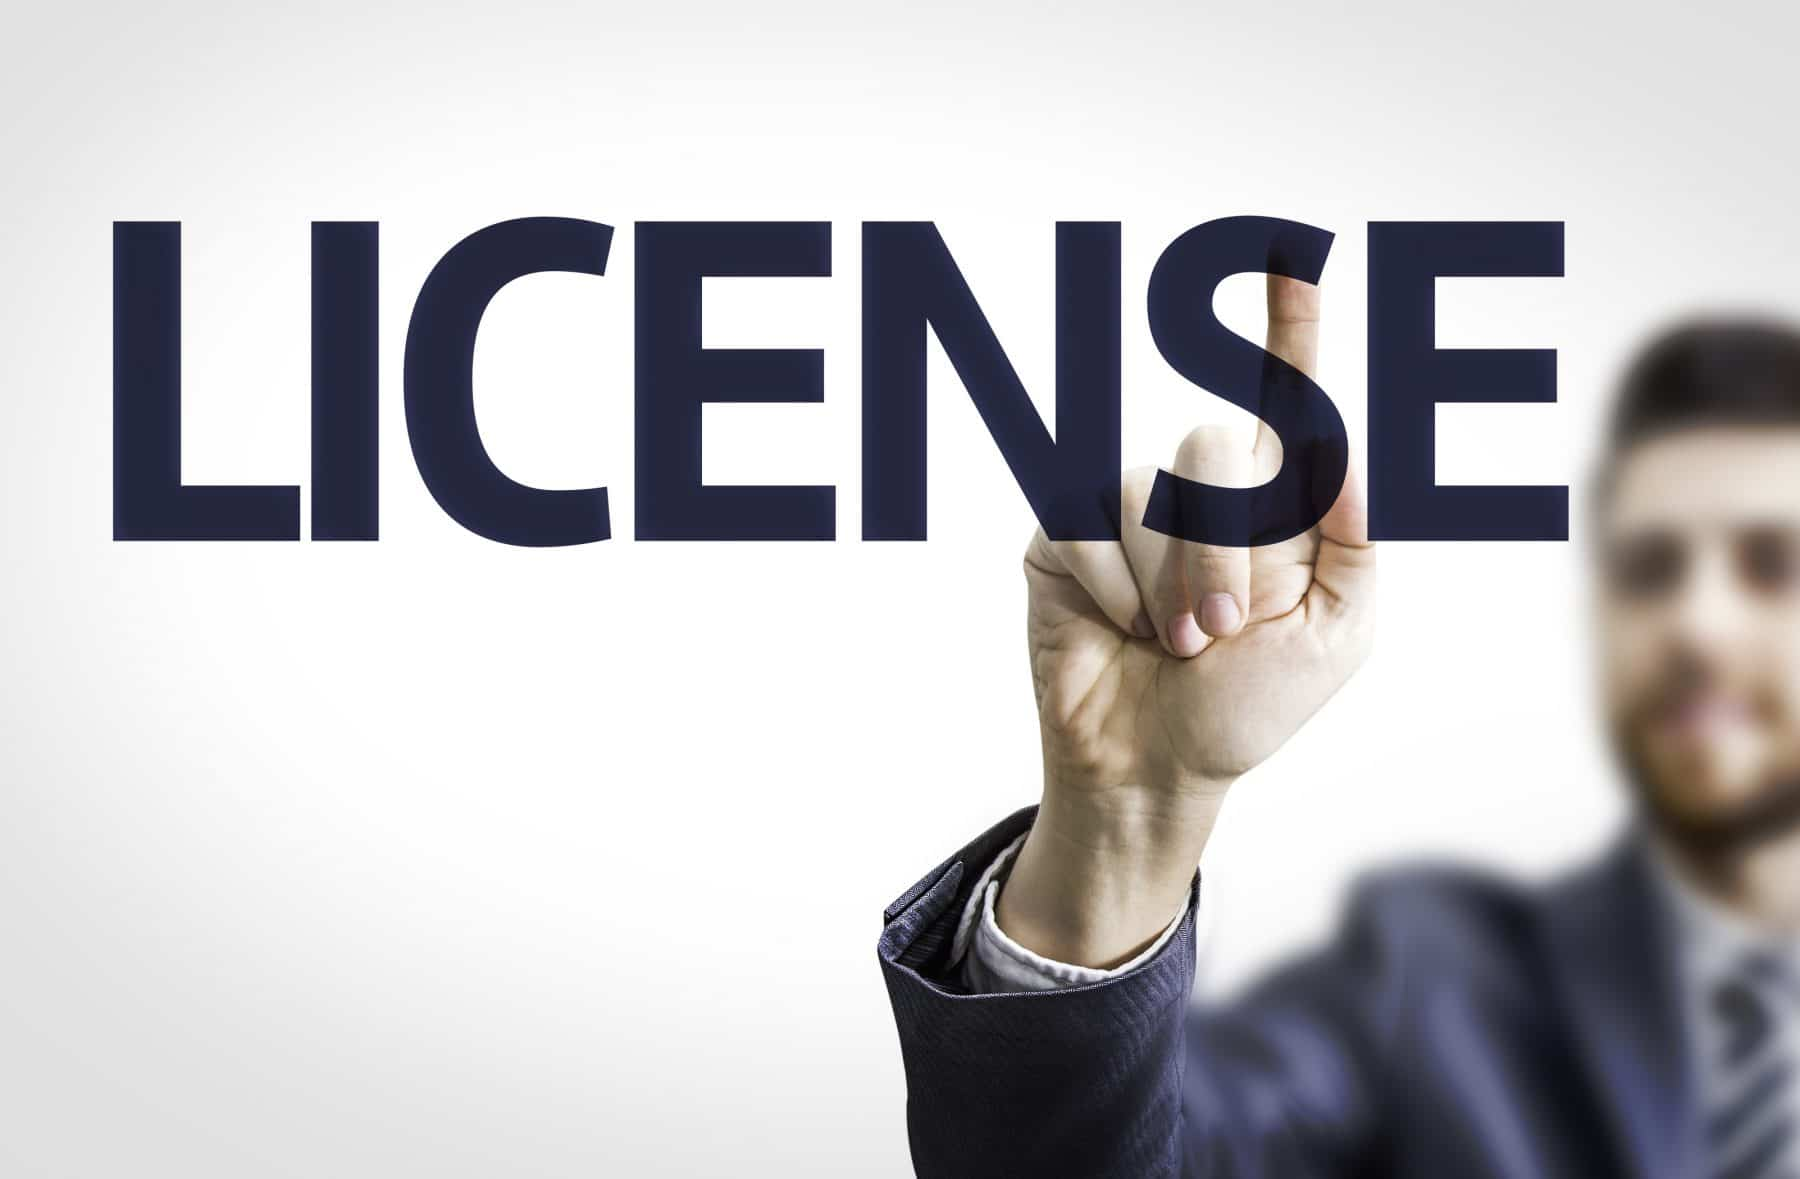 What is Operating a Vehicle After Suspension or Revocation?